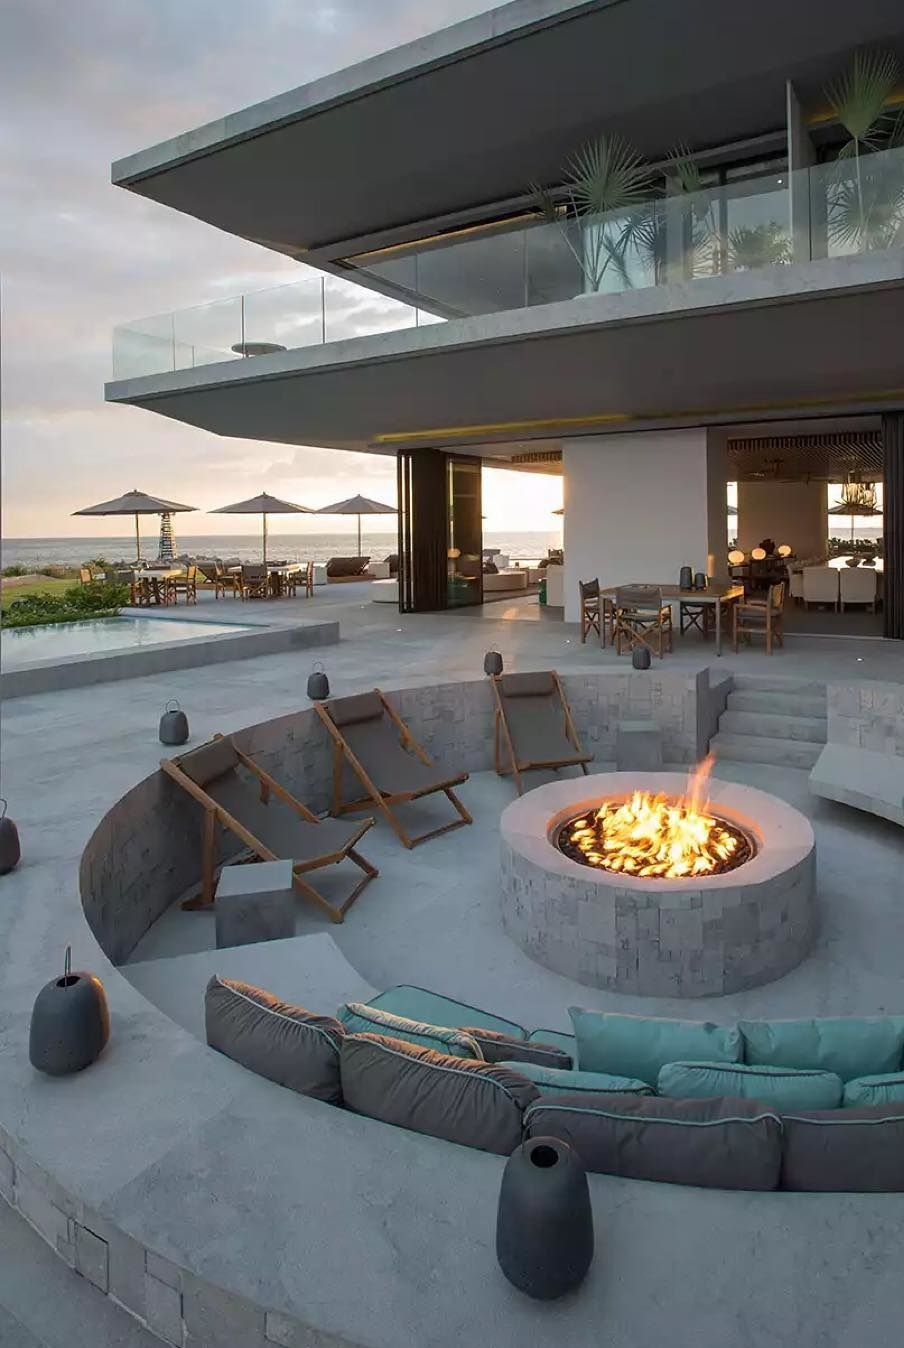 10 Awesome Backyard Ideas For Fire Pit Landscaping Kukun Dream House Exterior Modern Architecture House Exterior Design